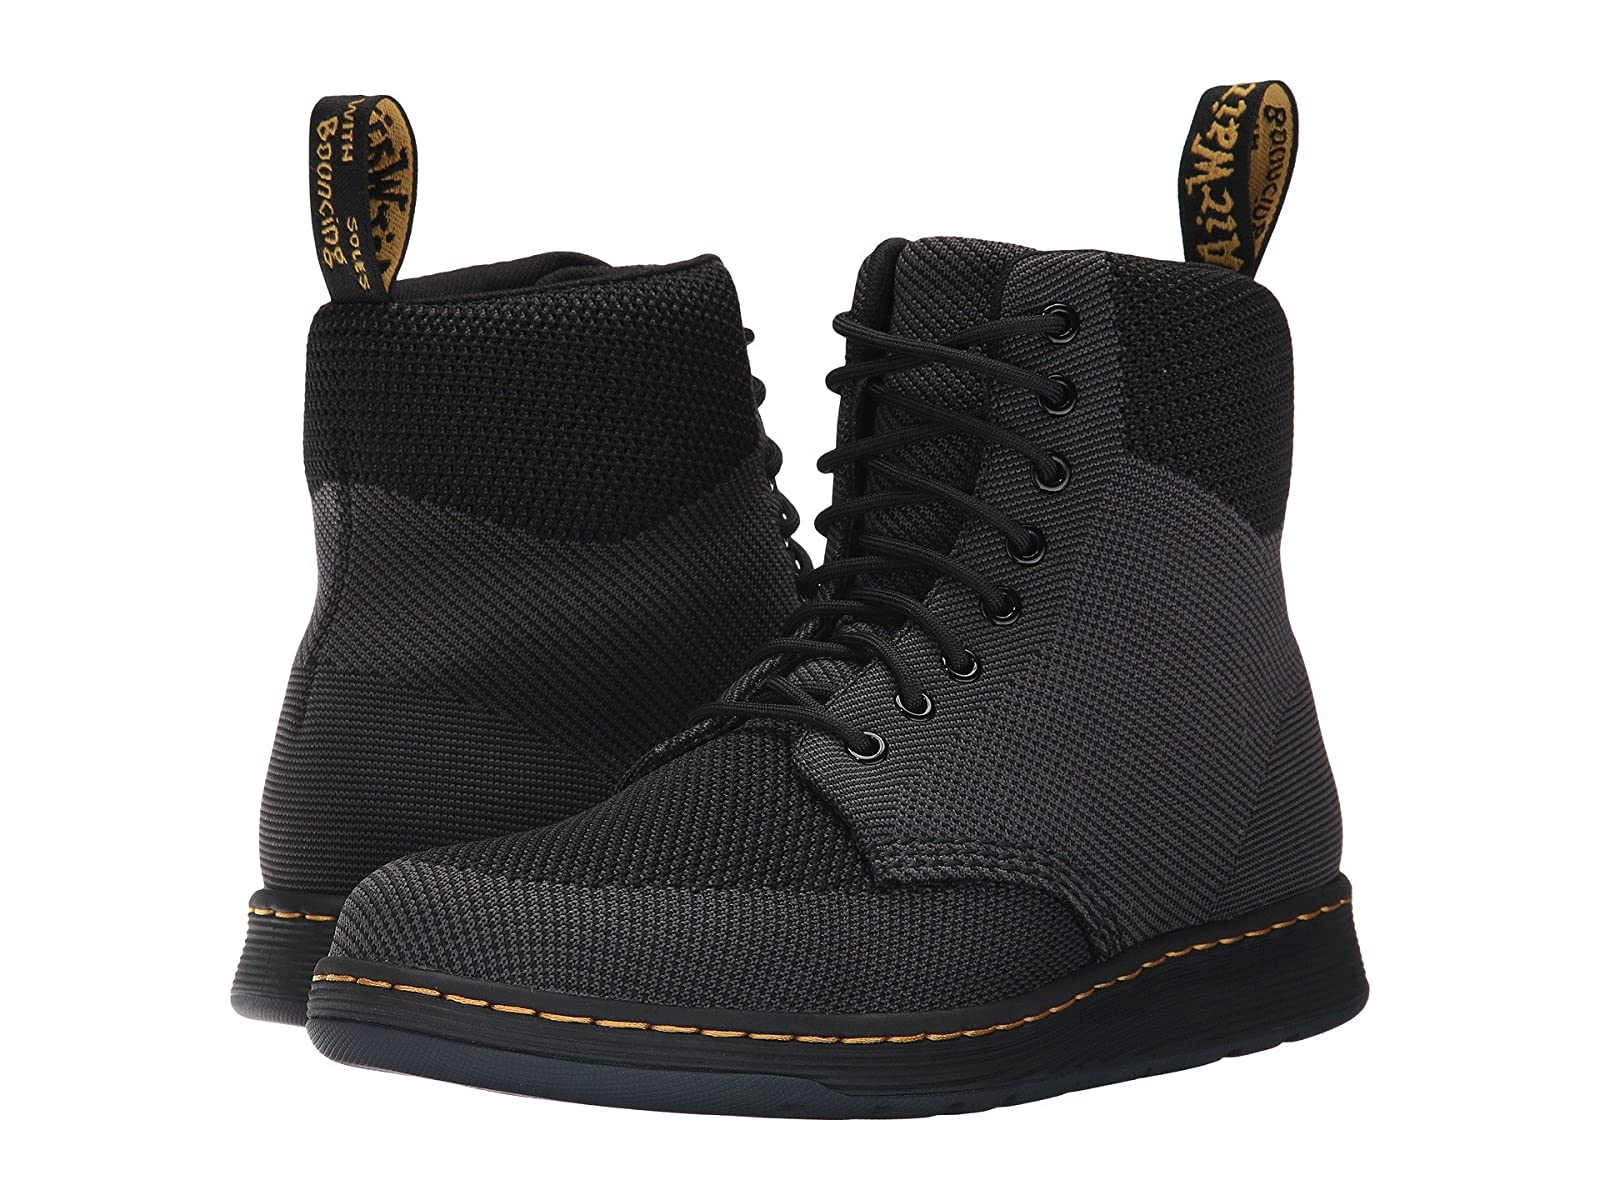 Dr. Martens Knit Rigal BootCheap and distinctive eye-catching shoes